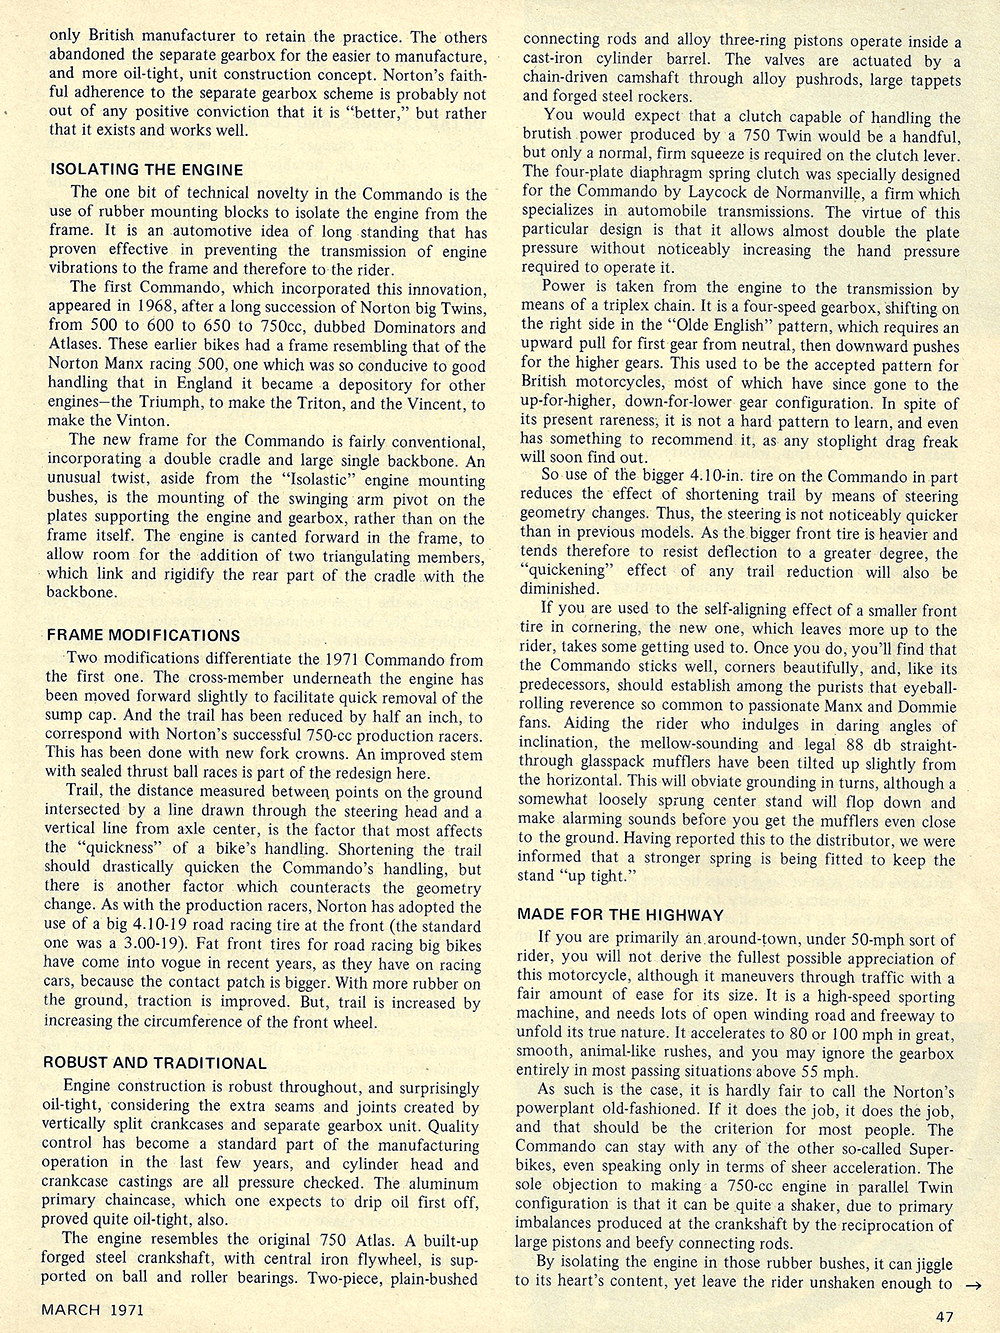 1971 Norton 750 Commando Fastback road test 02.jpg